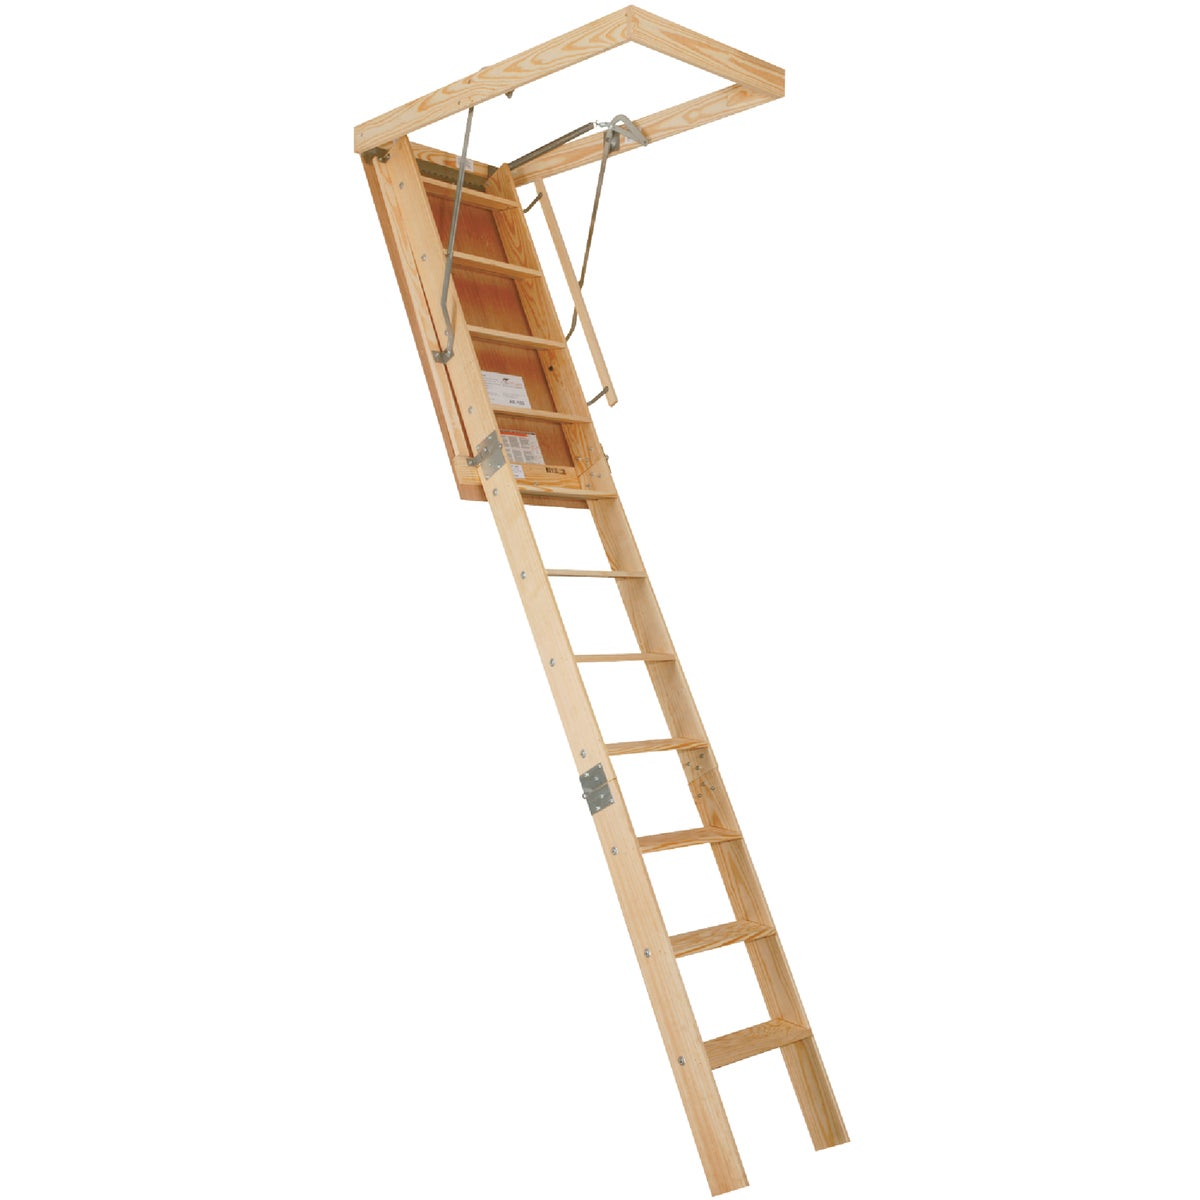 25X120 FIRE ATTIC STAIR